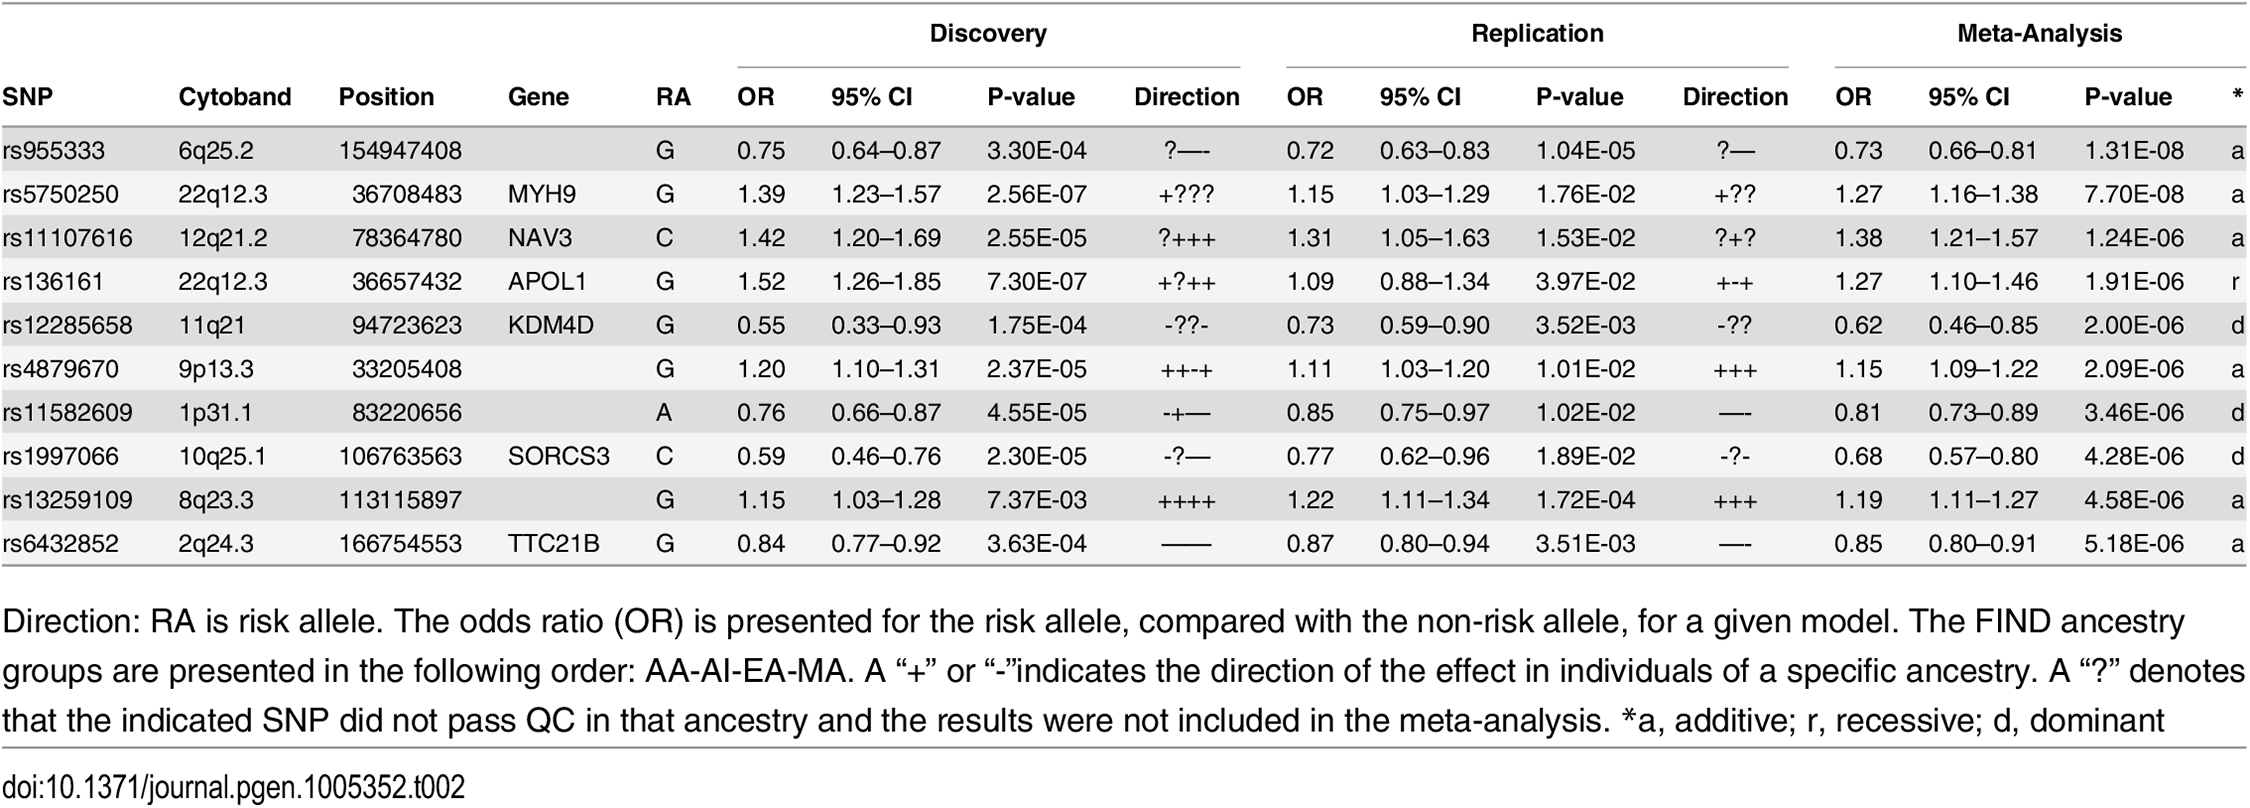 Trans-ethnic meta-analysis GWAS results, across Discovery and Replication samples.